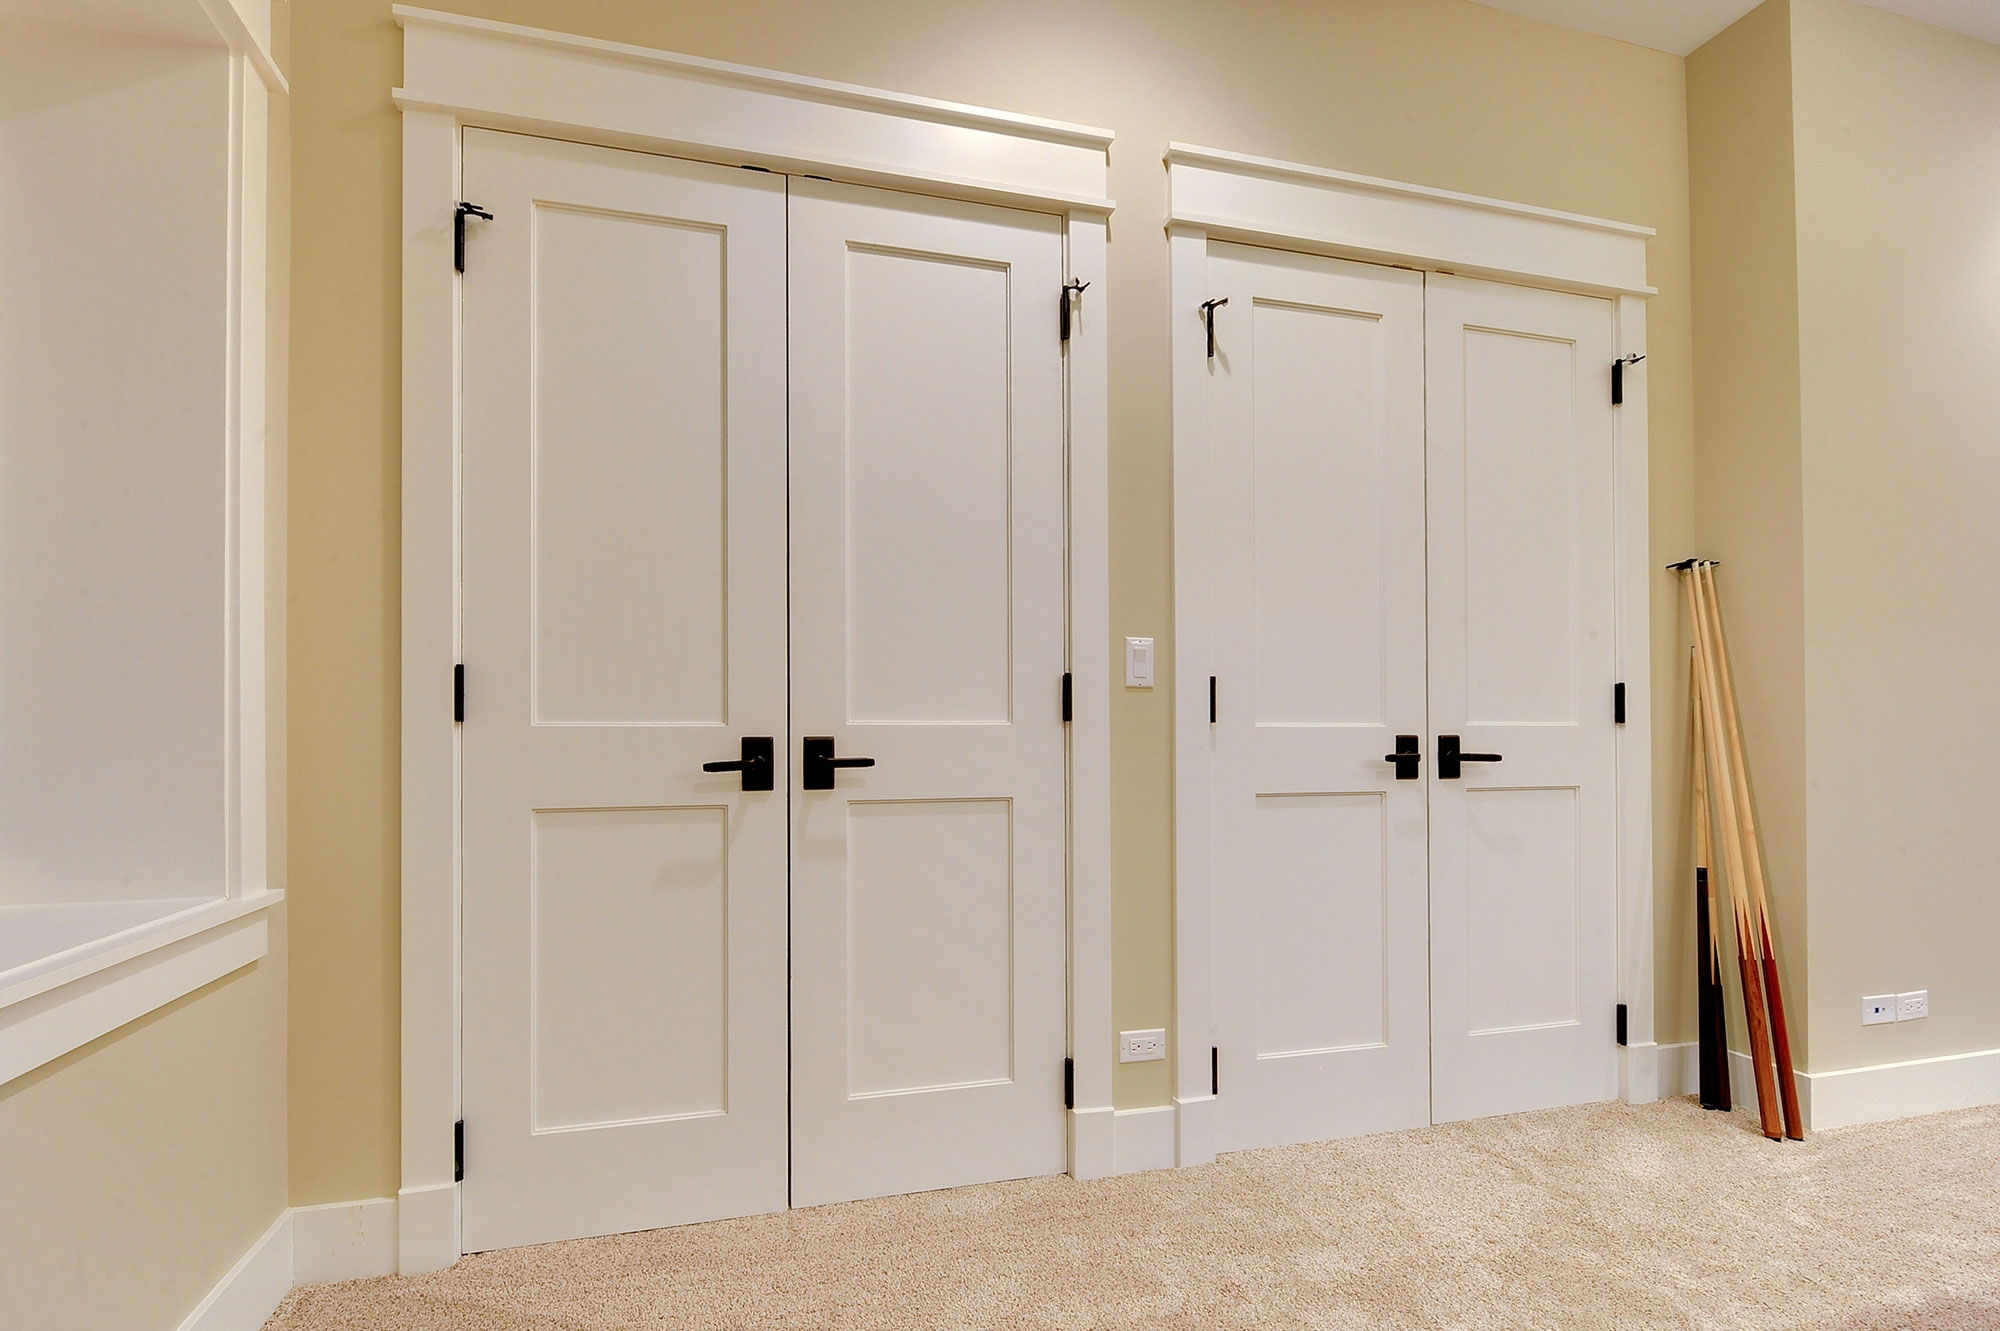 Interior Basement Door Options2000 X 1331